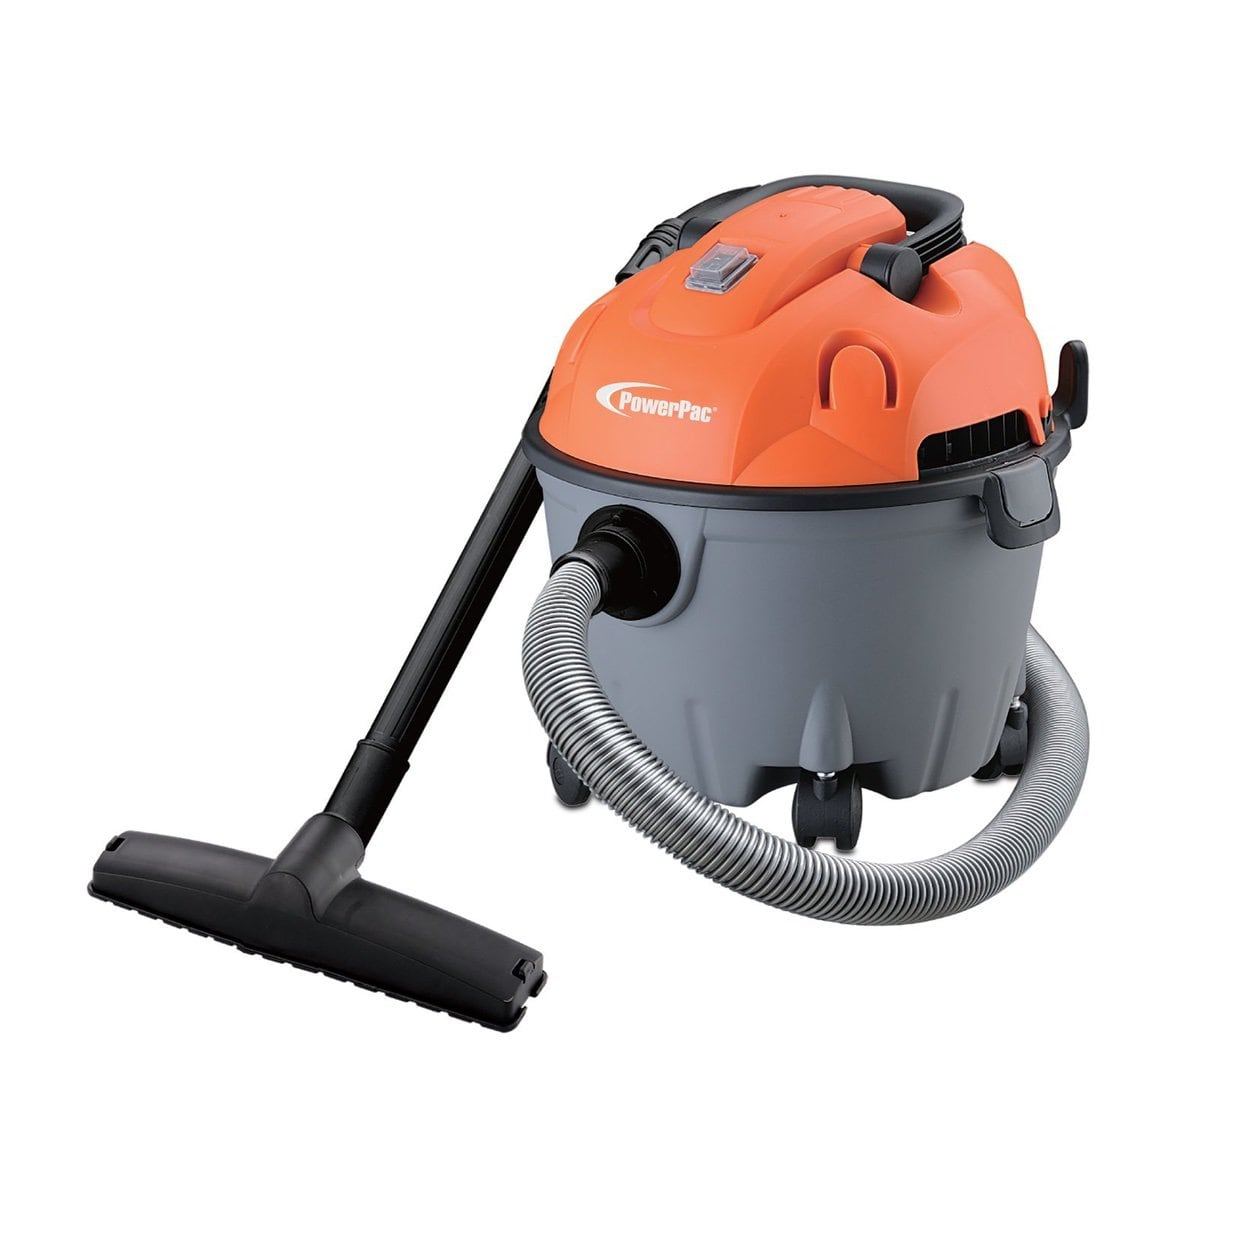 PowerPac Wet & Dry Vacuum Cleaner 1200 Watts (PPV1500)